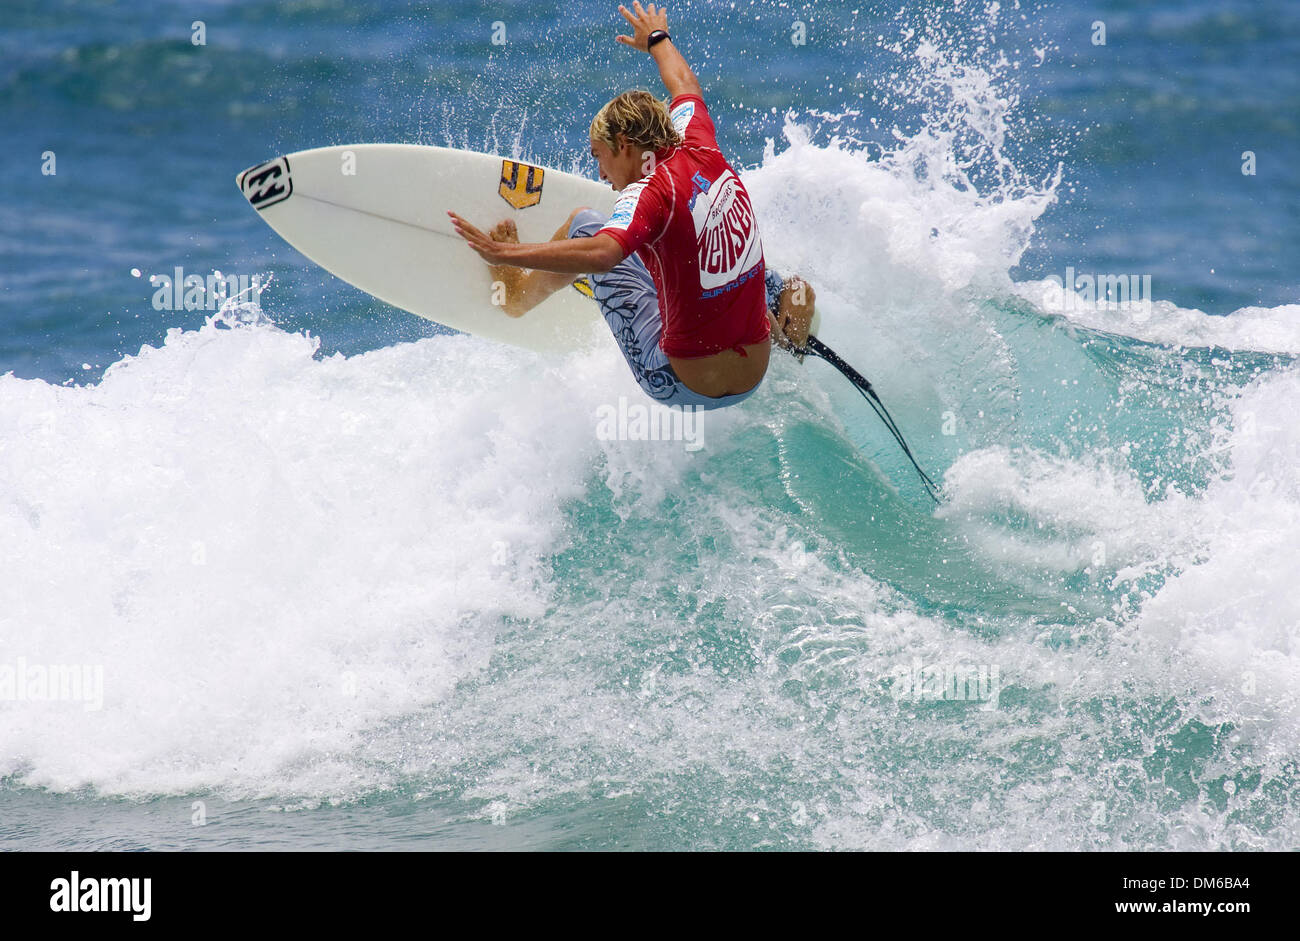 Jan 23, 2005; Duranbah, QLD, Australia; Australian SAM PAGE (Sydney) placed second to Jeremy Flores (REU) in the round of 48 surfers at the Brothers Neilsen Pro Junior at Duranbah on AustraliaÕs Gold Coast today. Page advanced to the round of 24 where he will face James Woods (NSW, Aus), Yadi Nicol (WA) and Shaun Harrington (QLD, Aus). - Stock Image